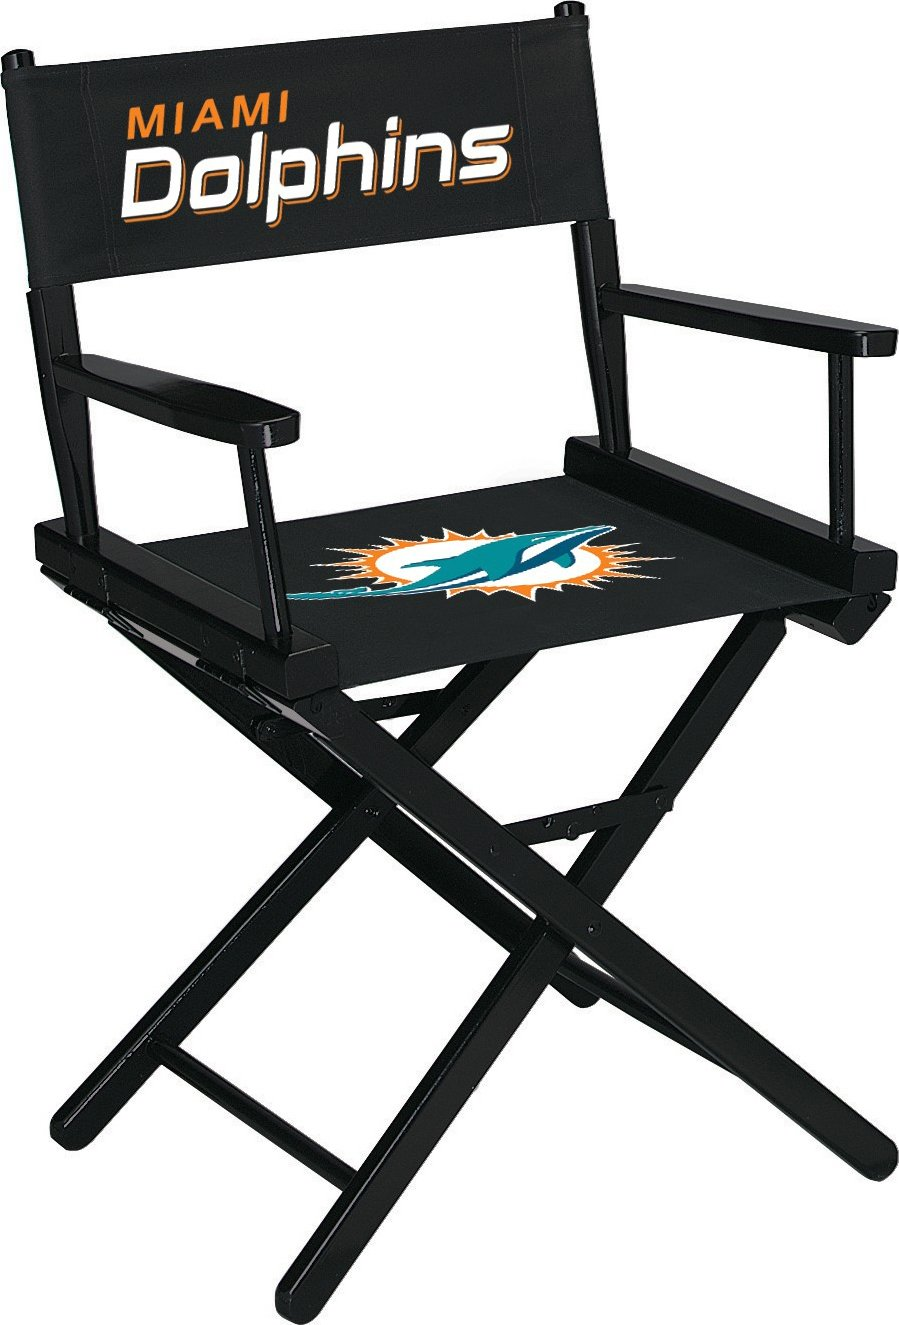 Imperial Officially Licensed NFL Merchandise: Directors Chair (Short, Table Height), Miami Dolphins by Imperial